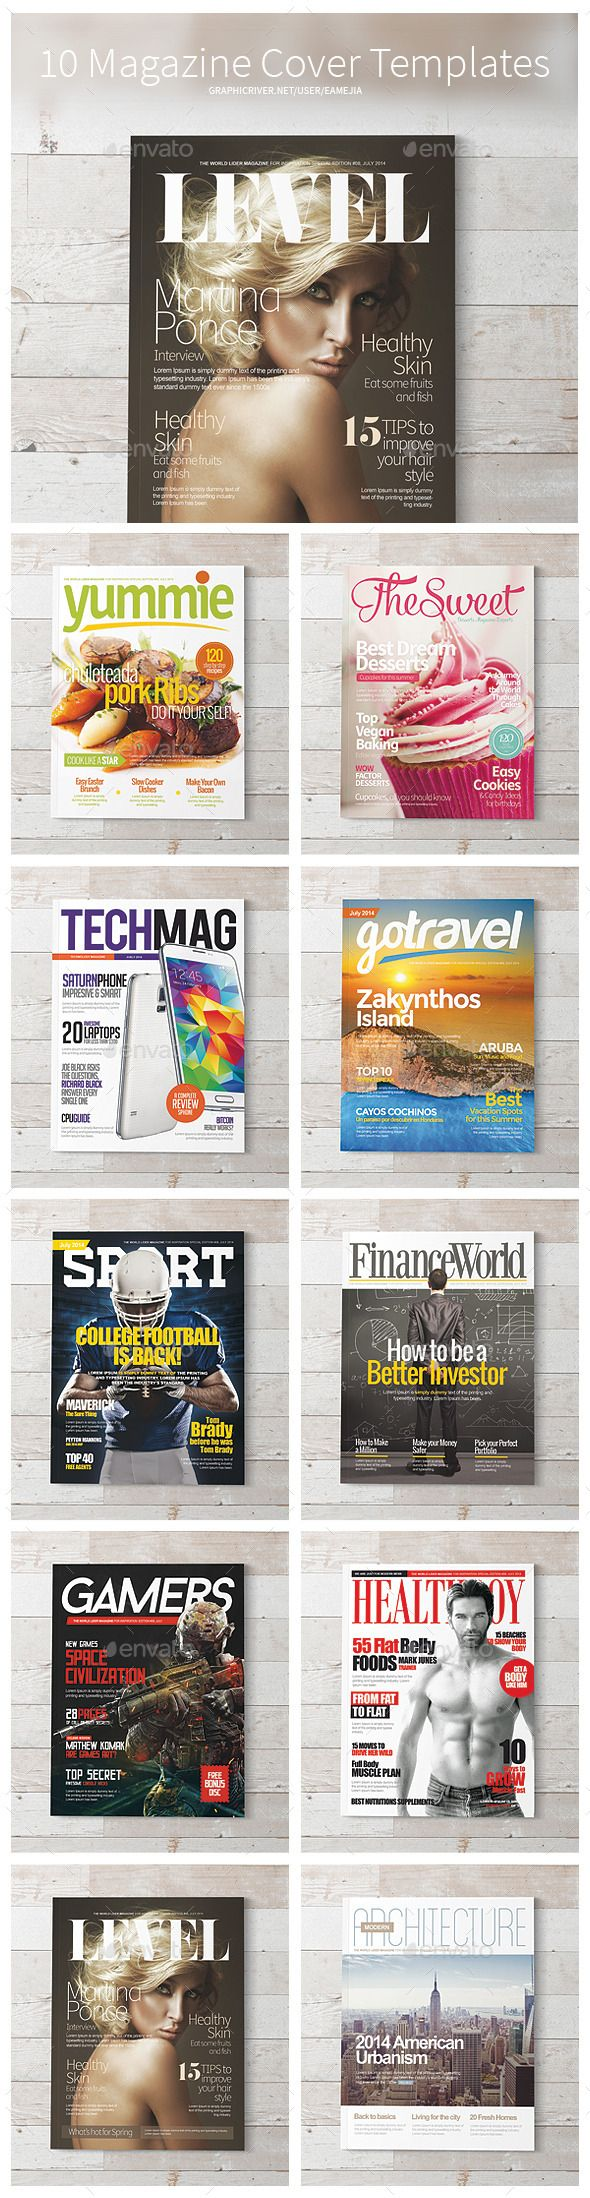 Magazine Covers Templates Psd By Emejia Essential Set For Magazine